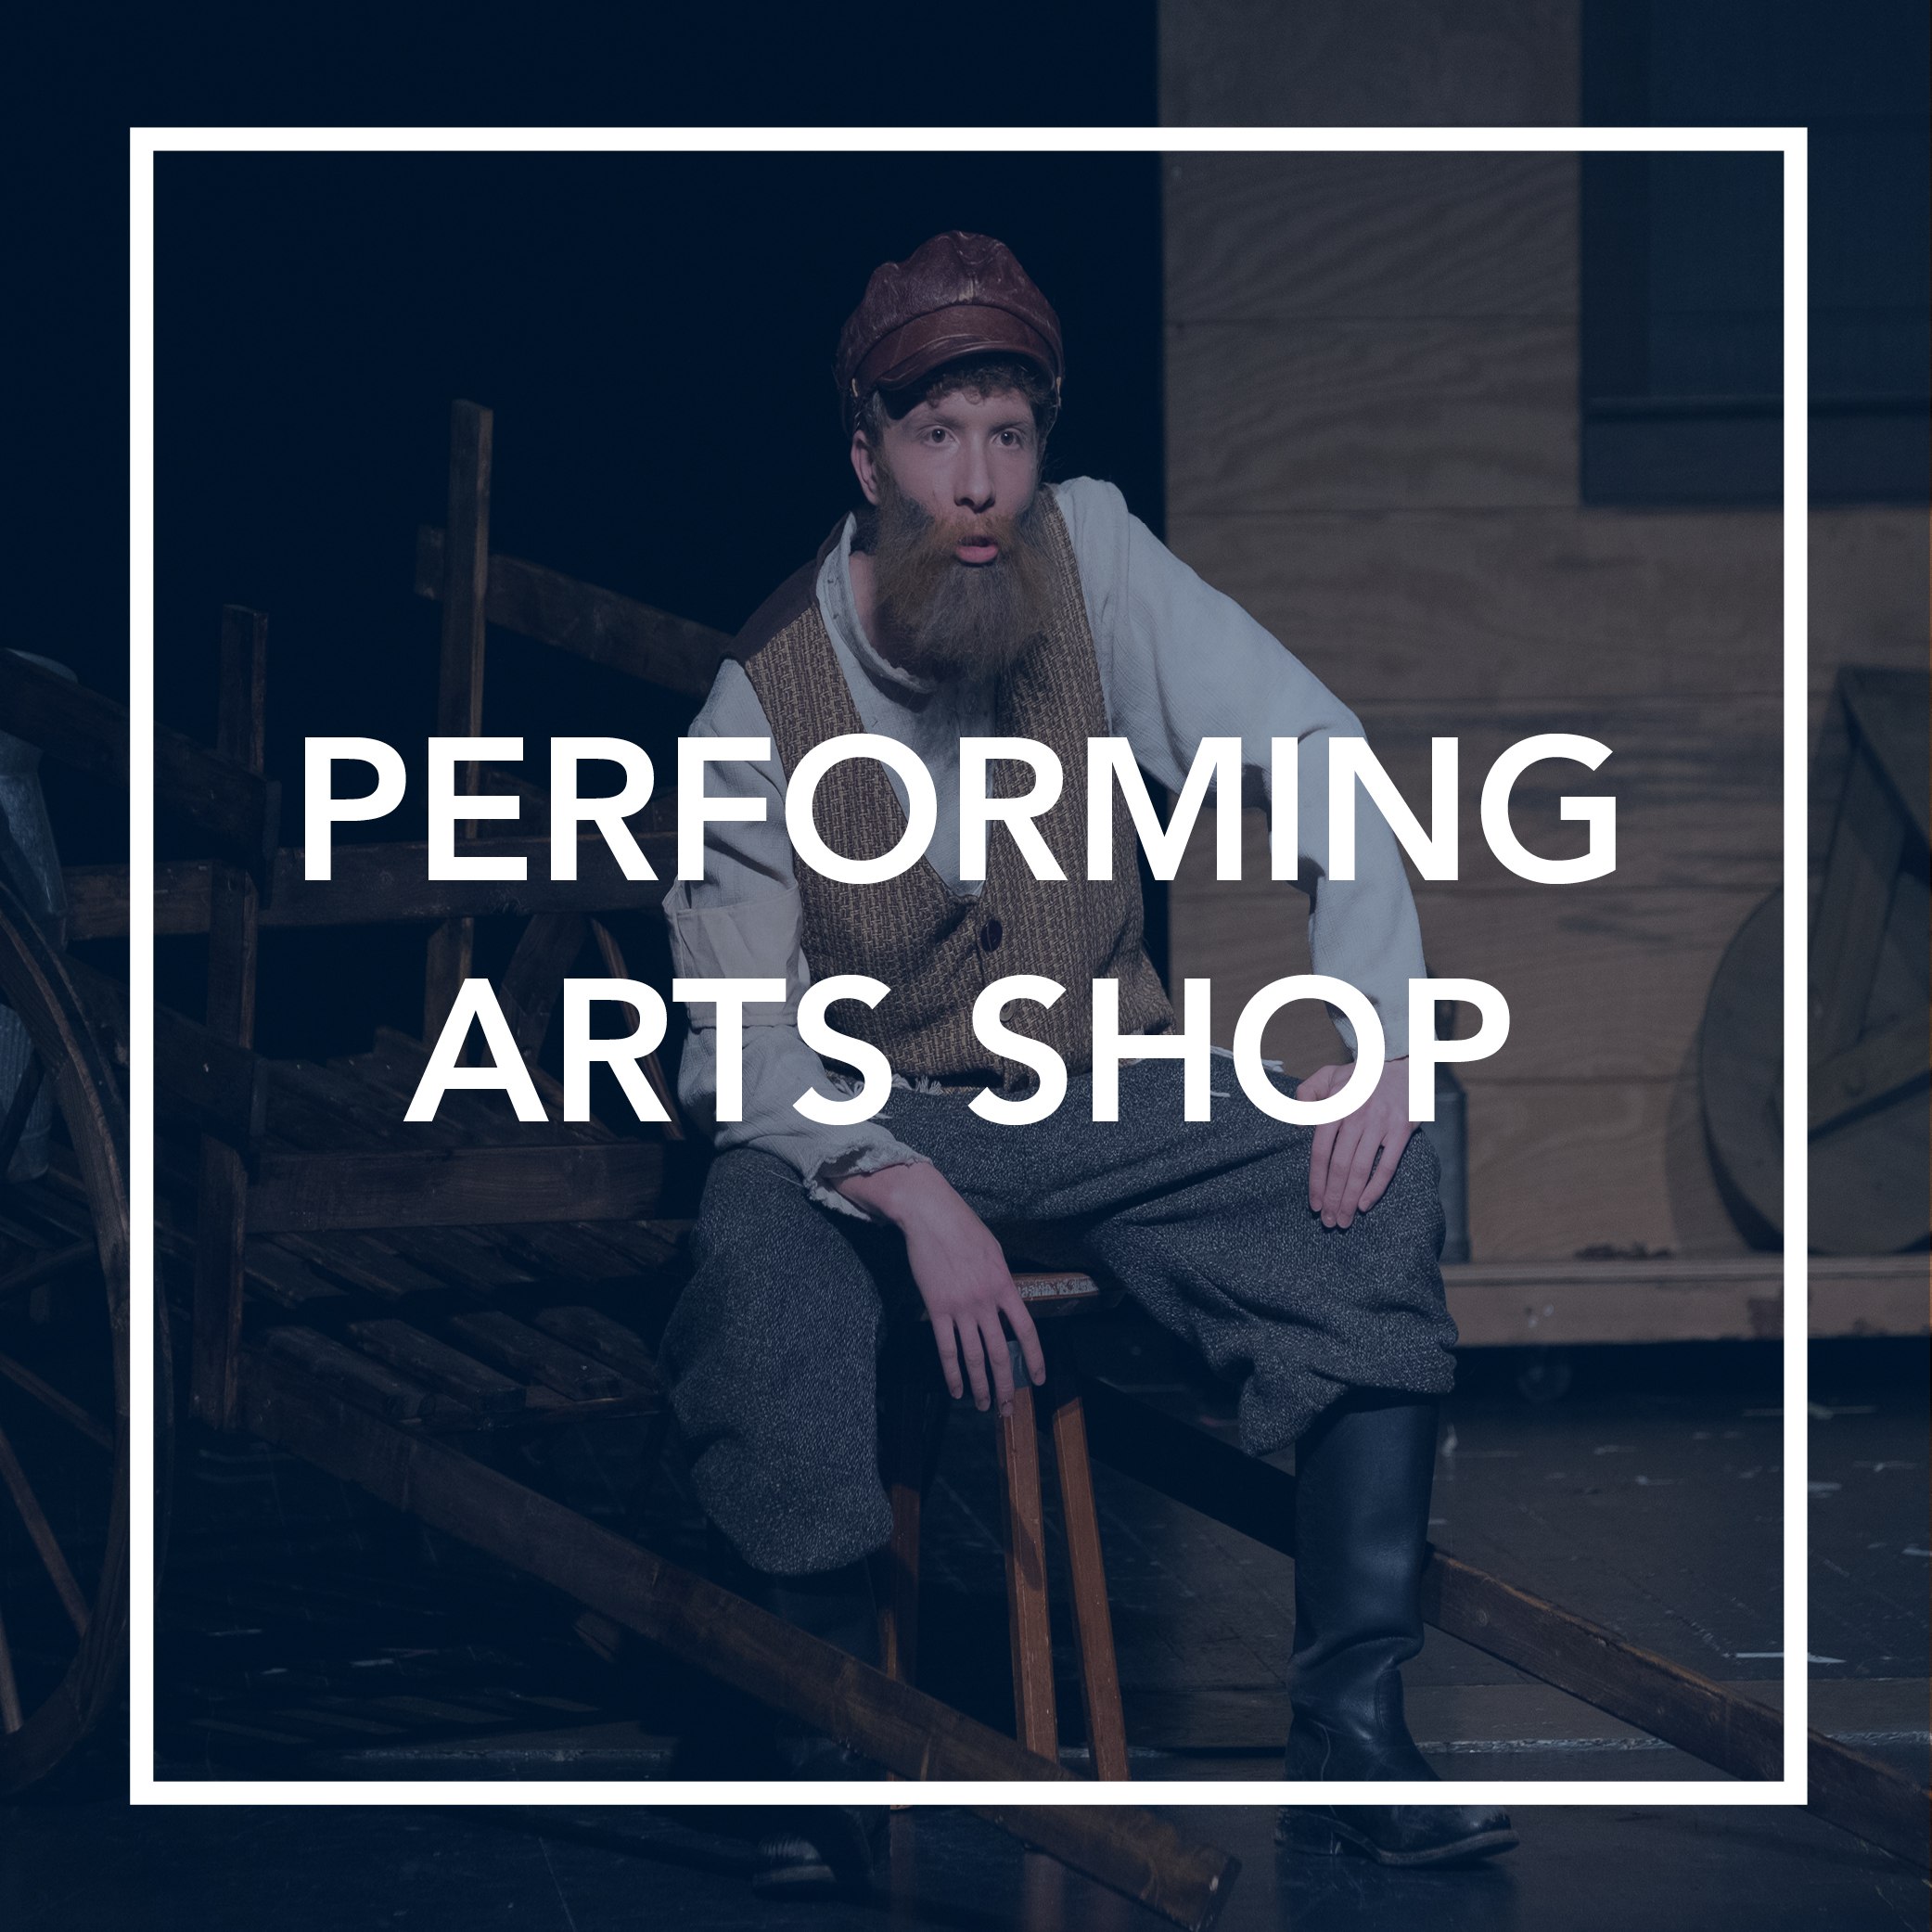 performing arts shop image.jpg